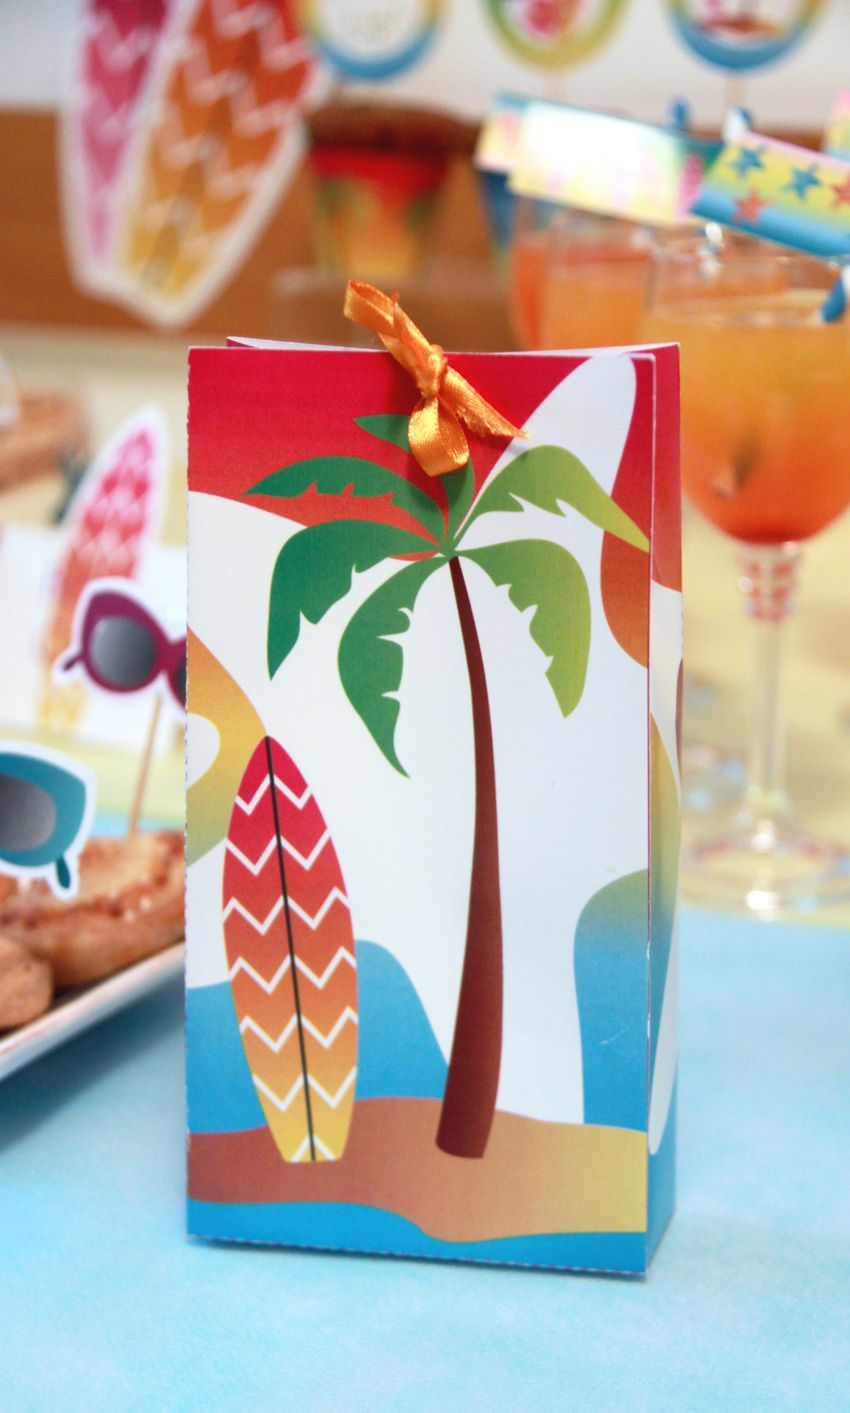 Beach party table decorations summer surf party printable favor box by pixiebearparty on etsy